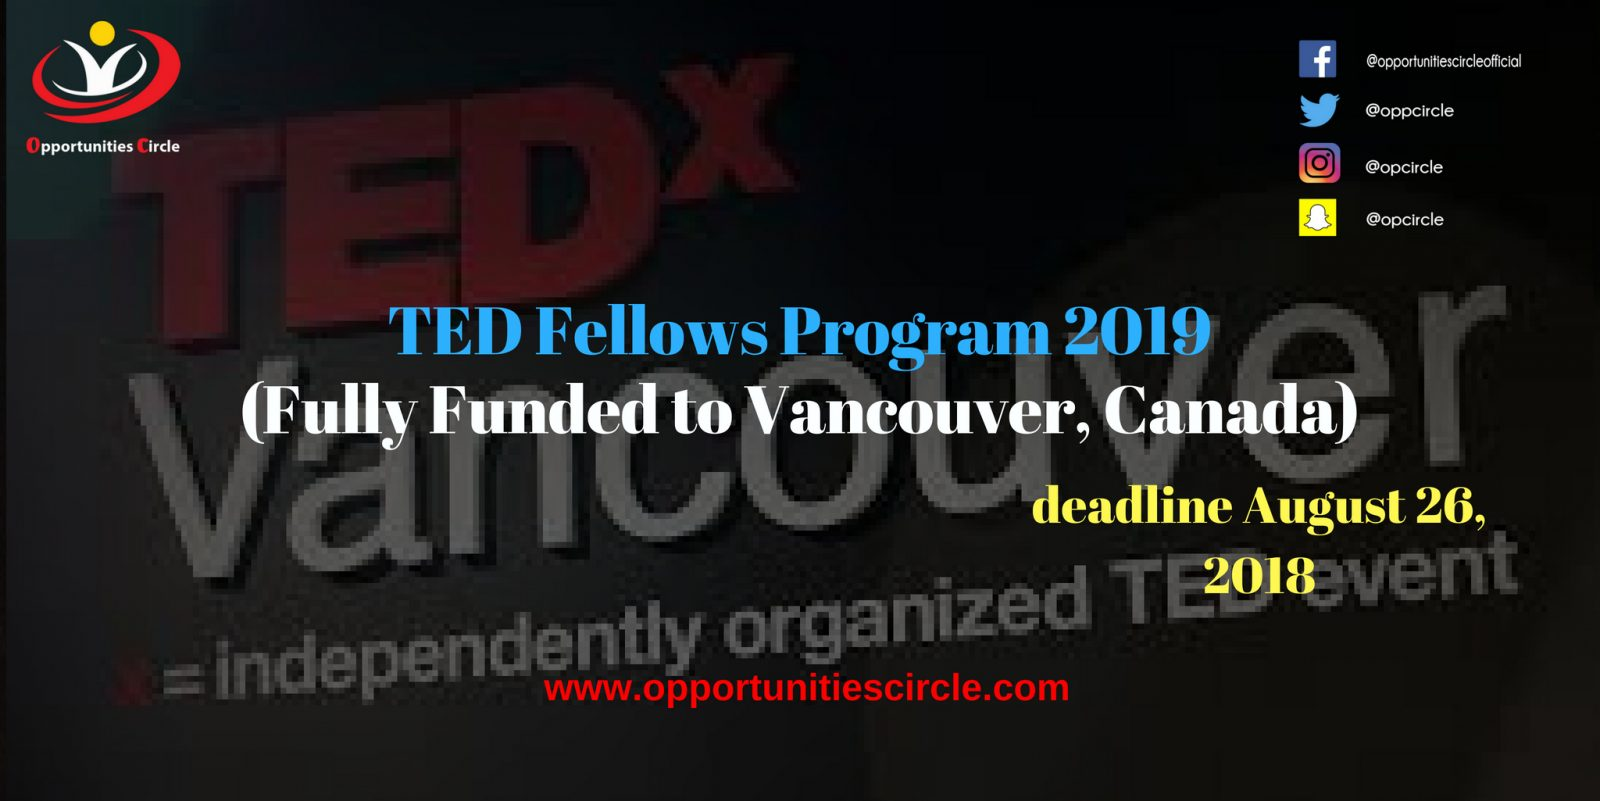 TED Fellows Program 2019 - TED Fellows Program 2019 (Fully Funded to Vancouver, Canada)